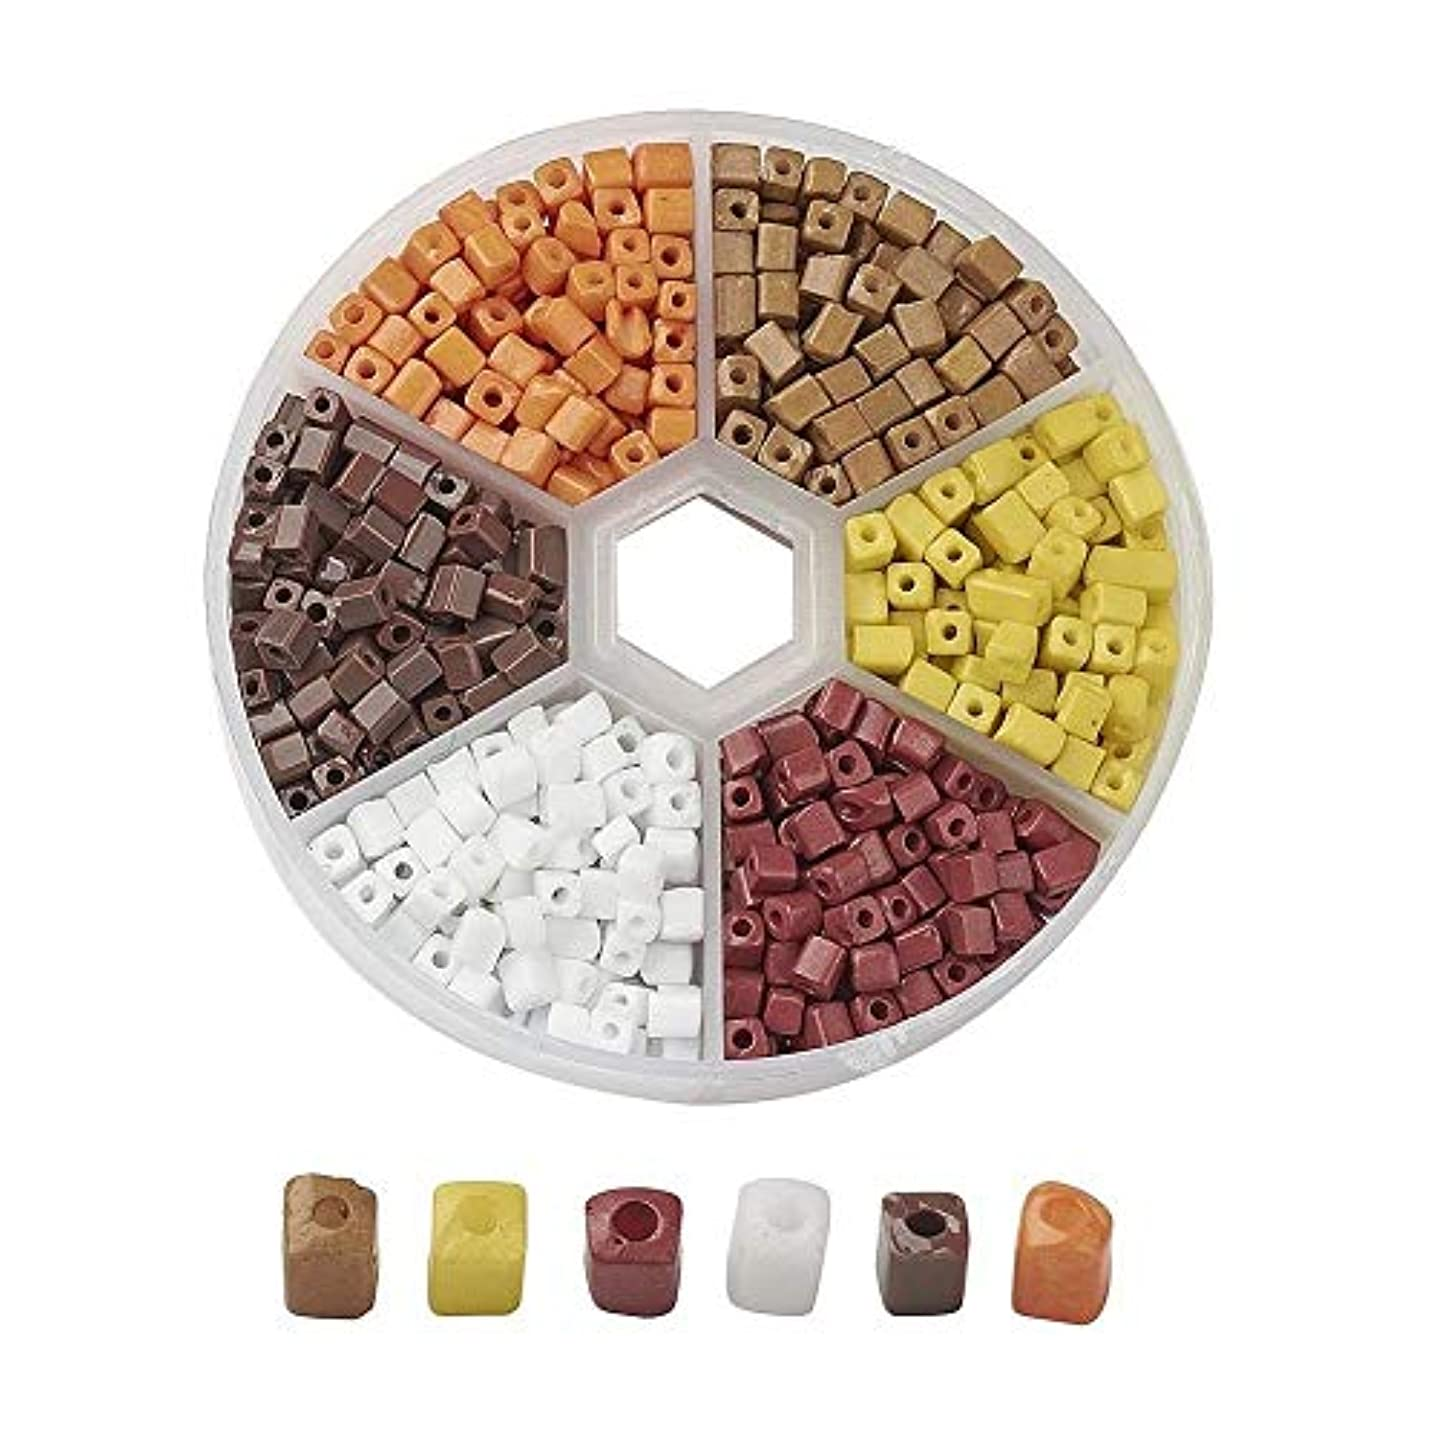 AMZ Beads - 1,000+ Mixed 6/0 (3-7mm) Assorted Square Cube Loose Spacer Seed Beads for Jewelry Making Craft DIY Projects Necklaces Bracelets - Includes Storage Container Case! (Browns)